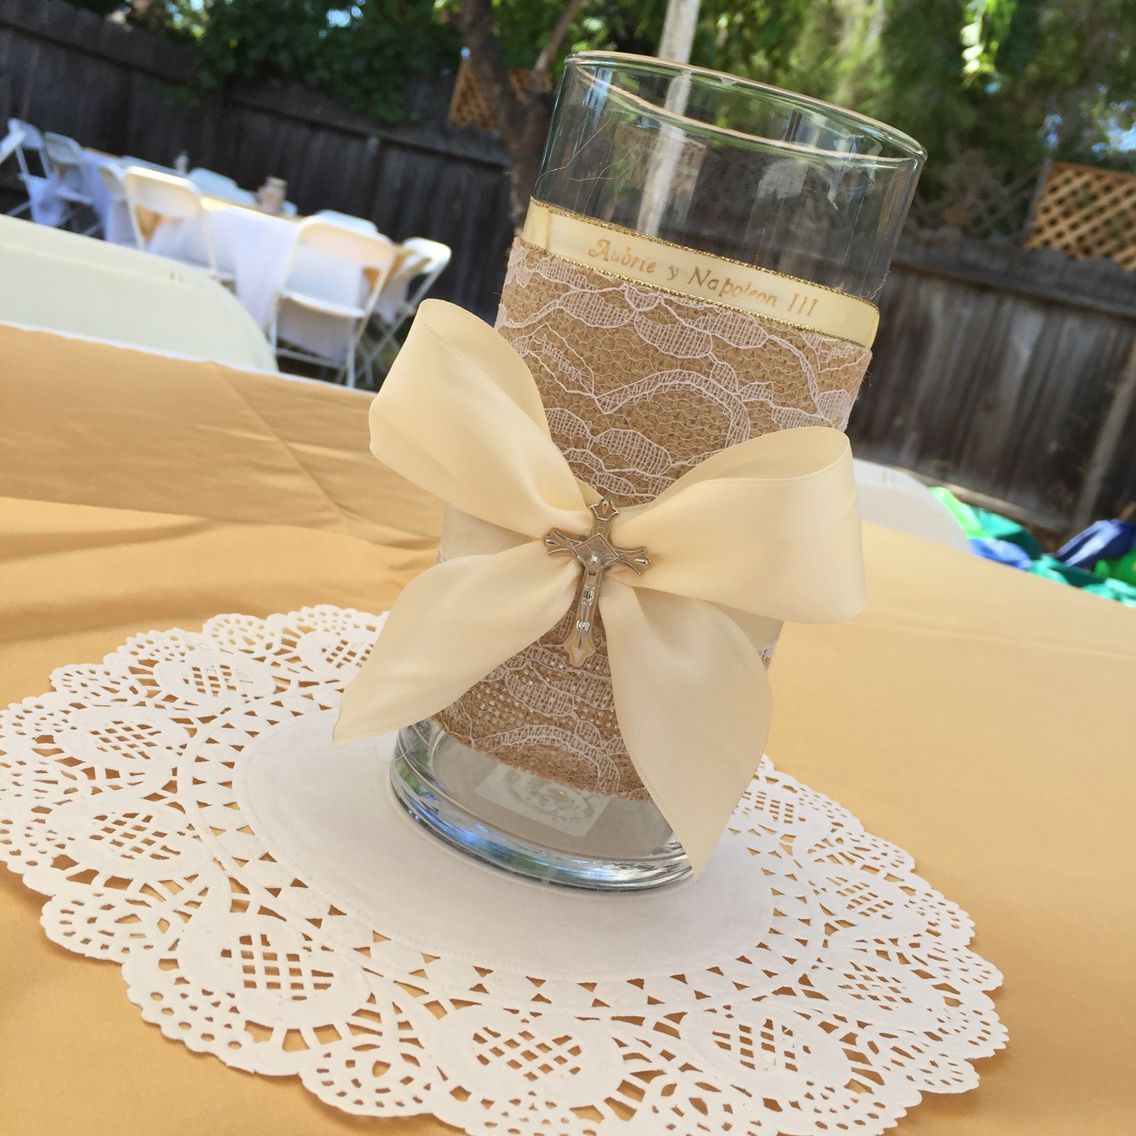 Cheap Baptism Center Piece Jar From Dollar Store Ribbon From